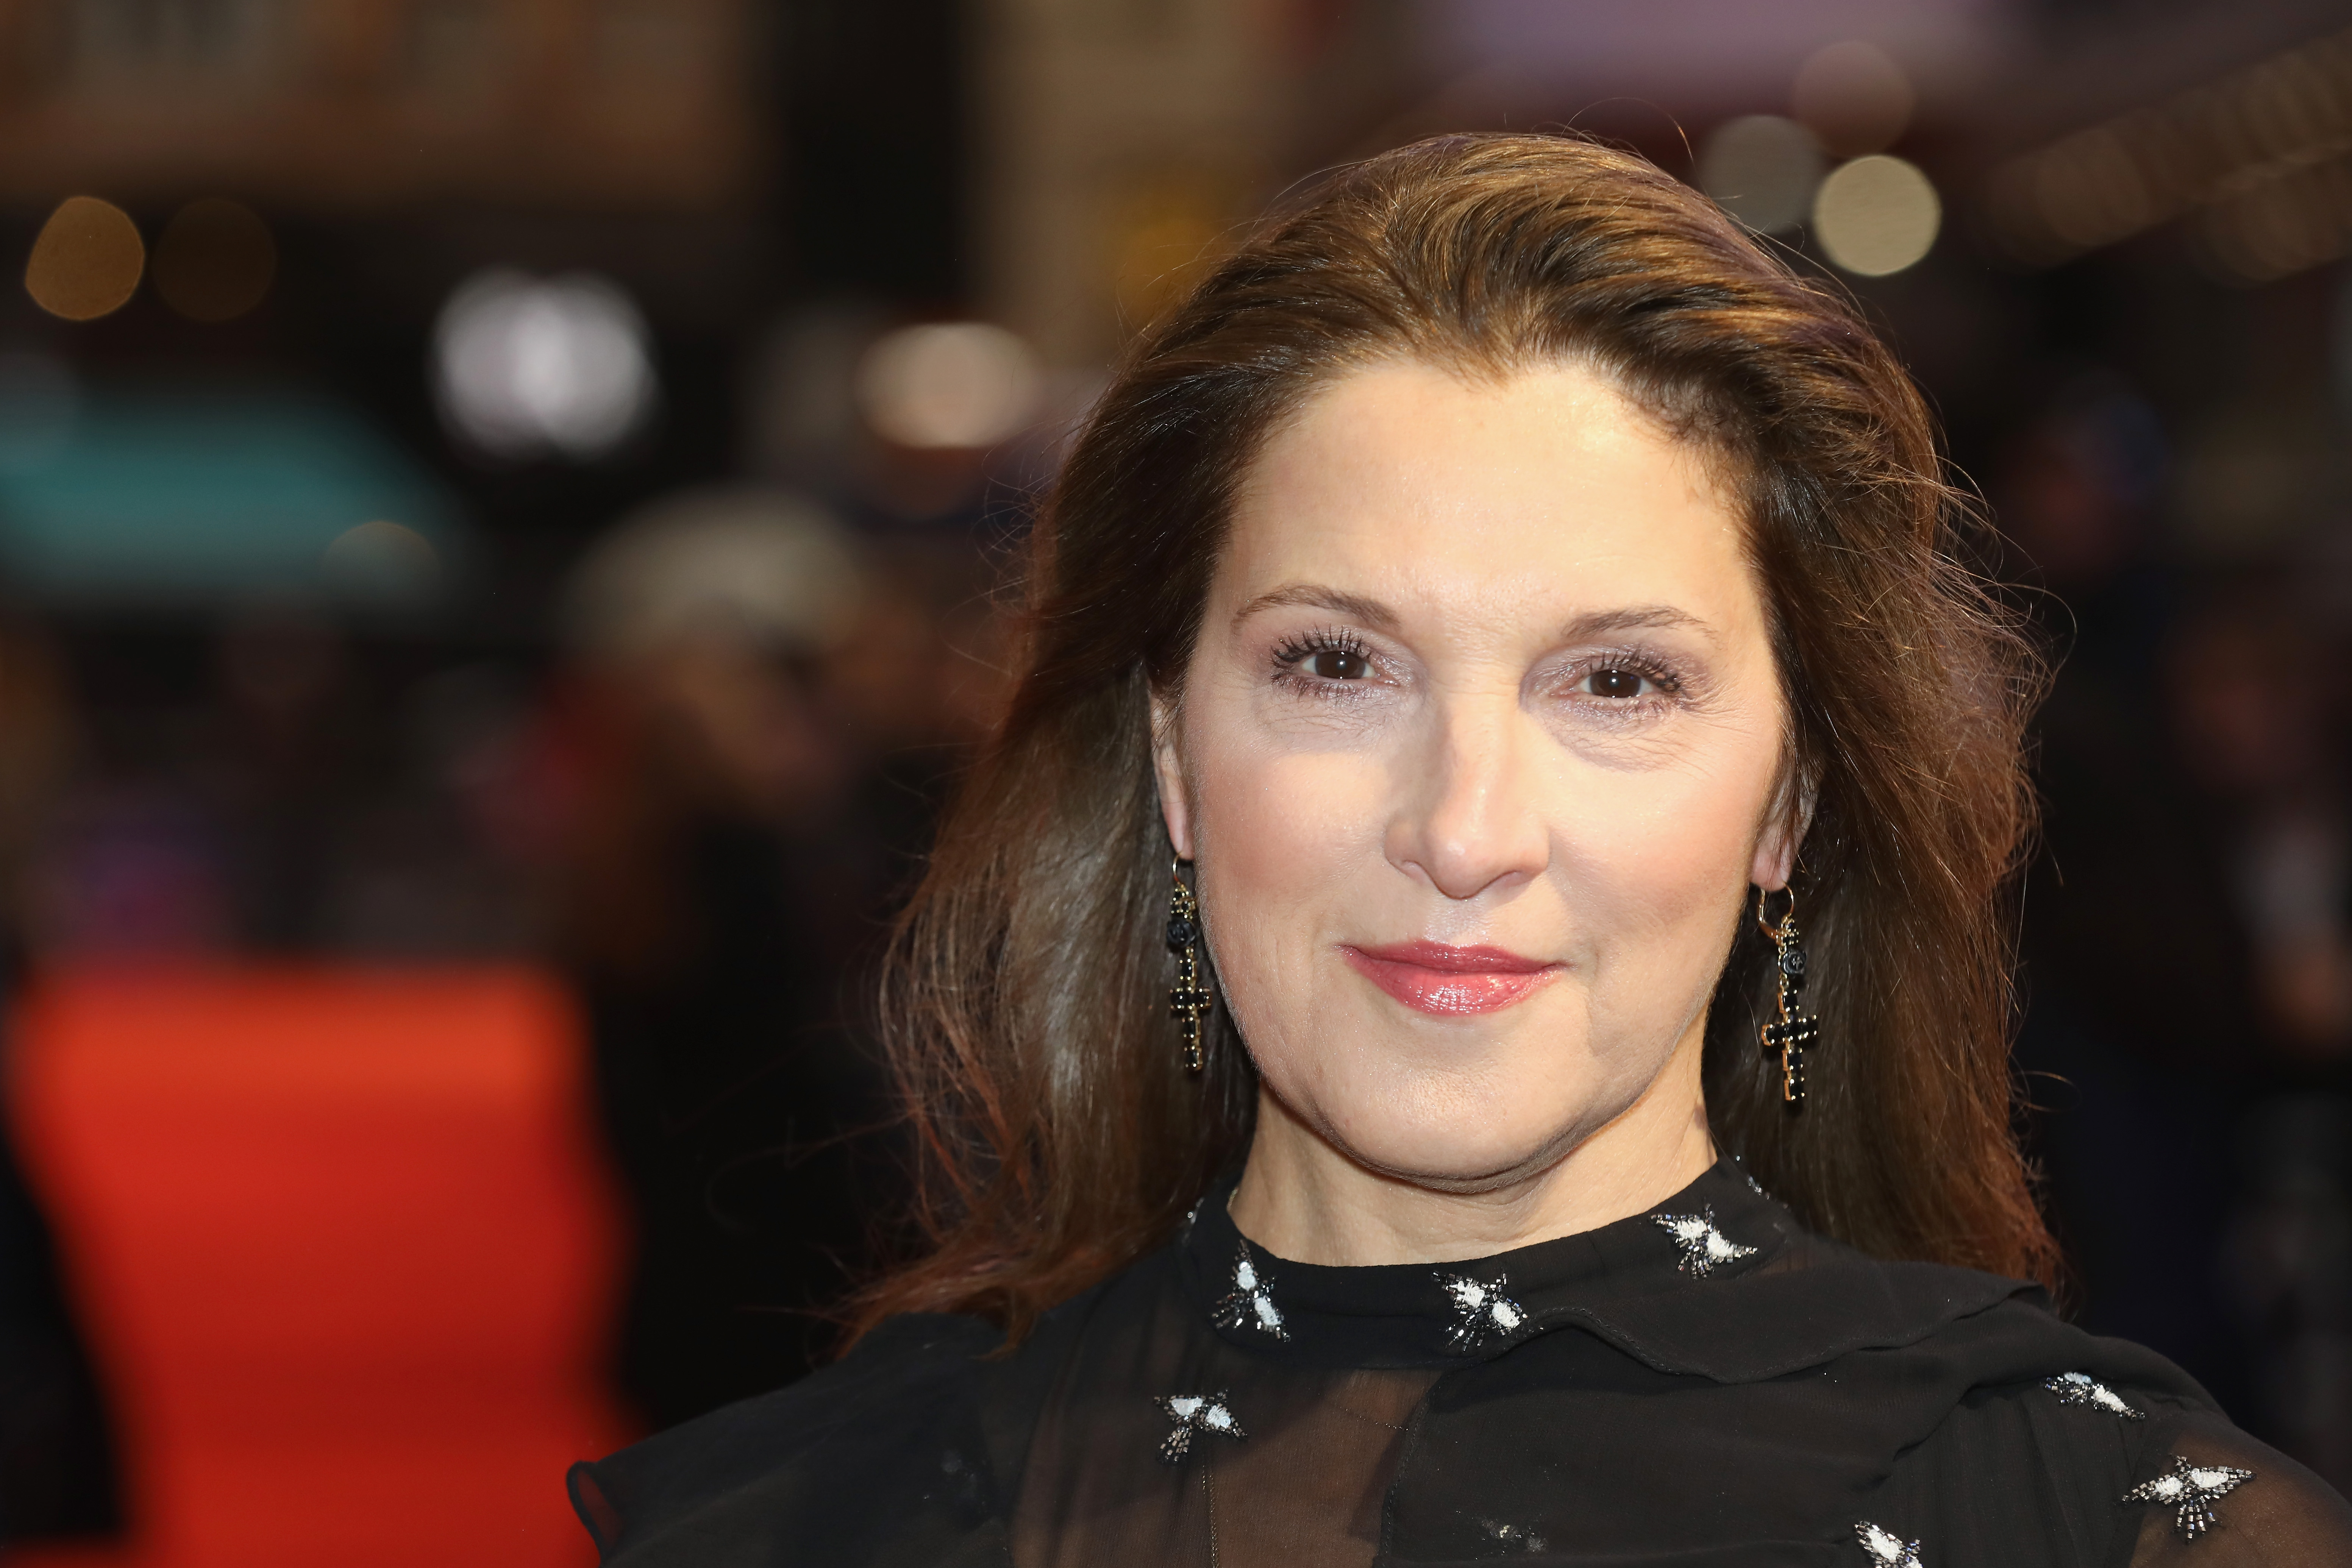 Producer Barbara Broccoli attends the Mayfair Gala & European Premiere of 'Film Stars Don't Die in Liverpool' during the 61st BFI London Film Festival on October 11, 2017 in London, England.